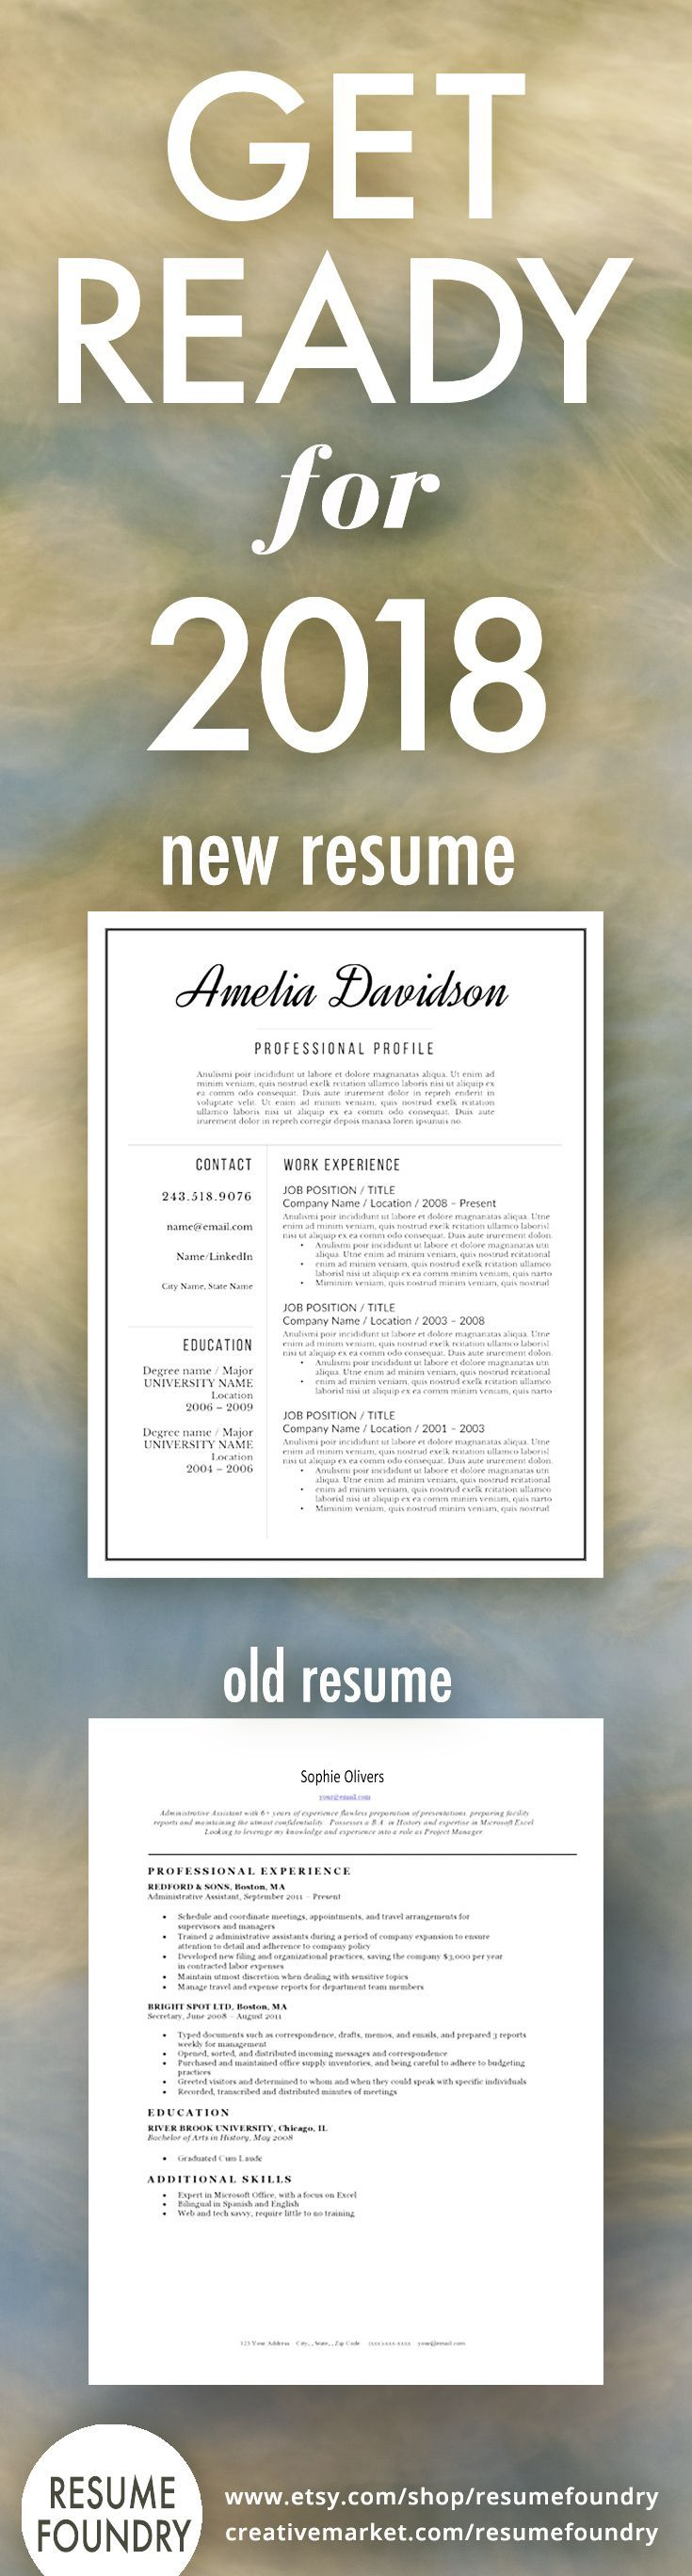 Amazing Resumes What Type Of Employment Assistance Do You Need Help With  Resumes .